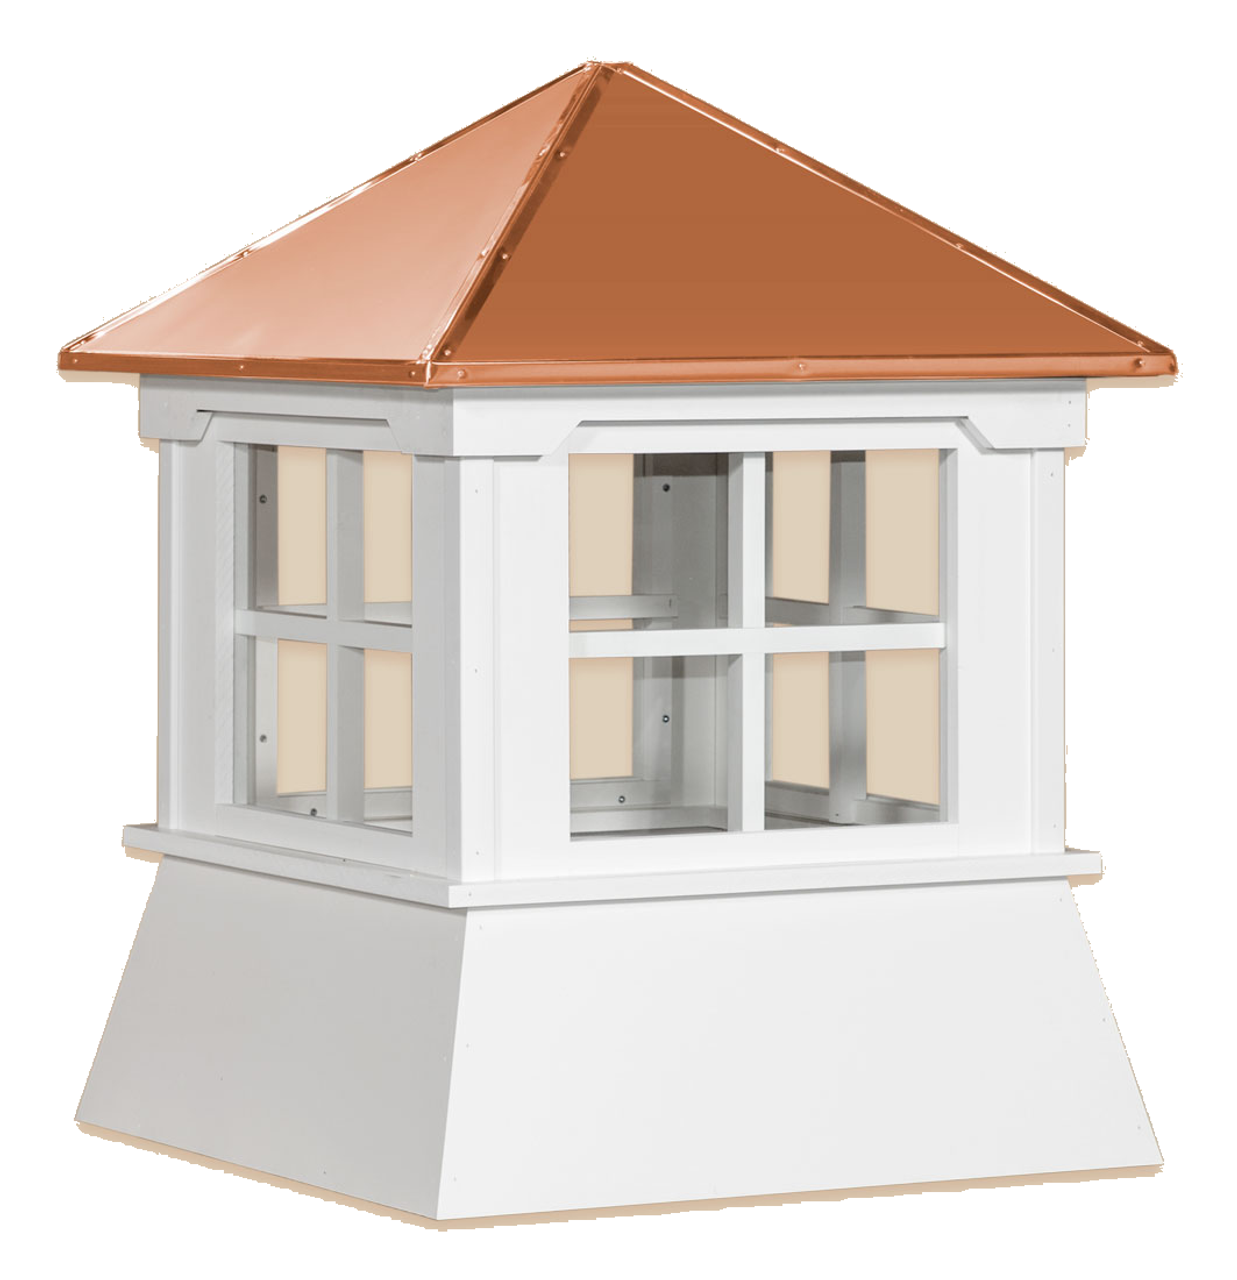 Cupola - Manor Shed: Azek – Windowed Copper Top - 30Lx30Wx36H